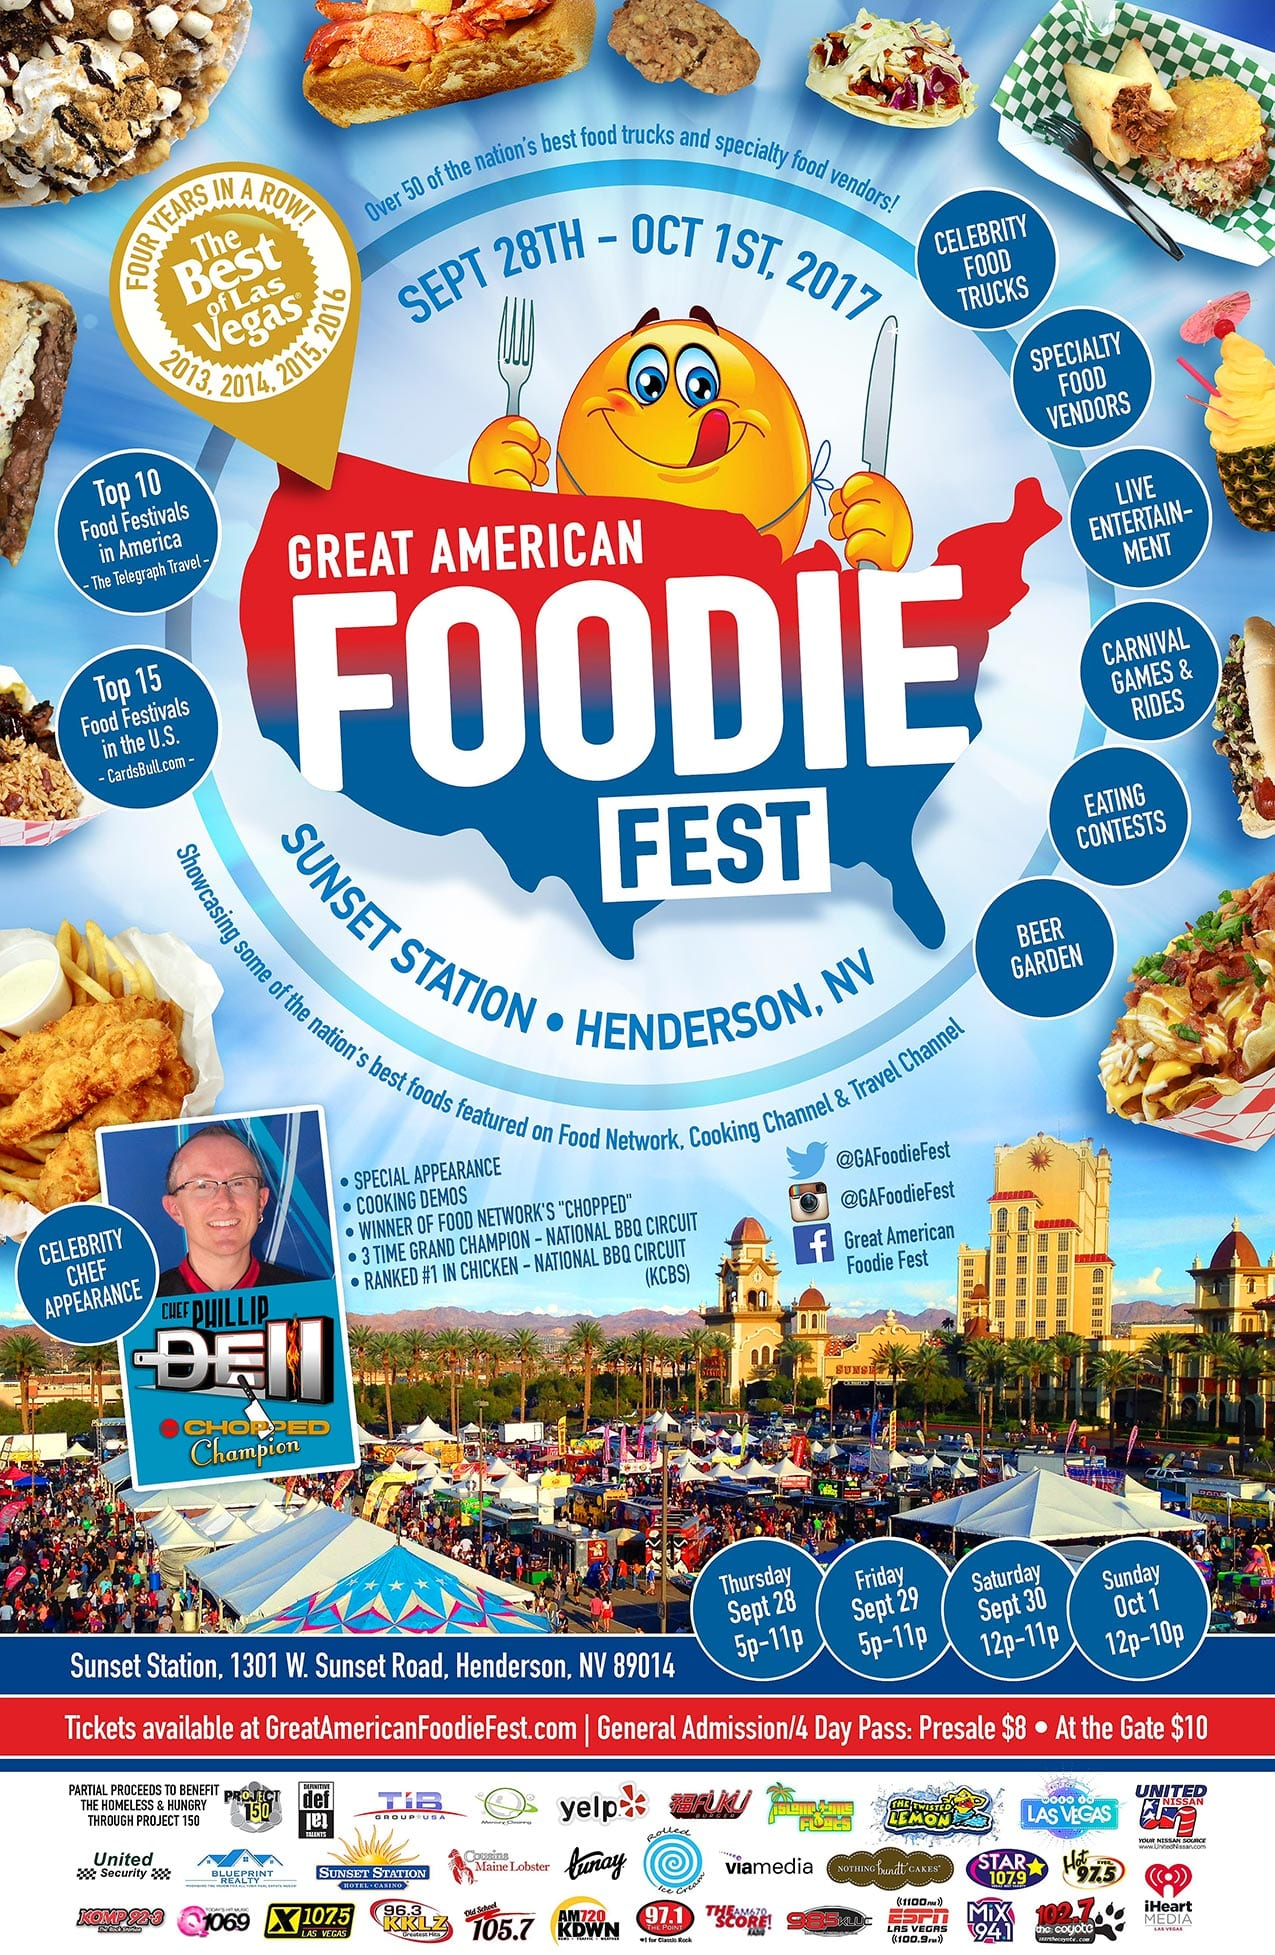 Chef Phillip Dell's Food track will be at the Great American Foodie Fest Sept 28 through October 1.